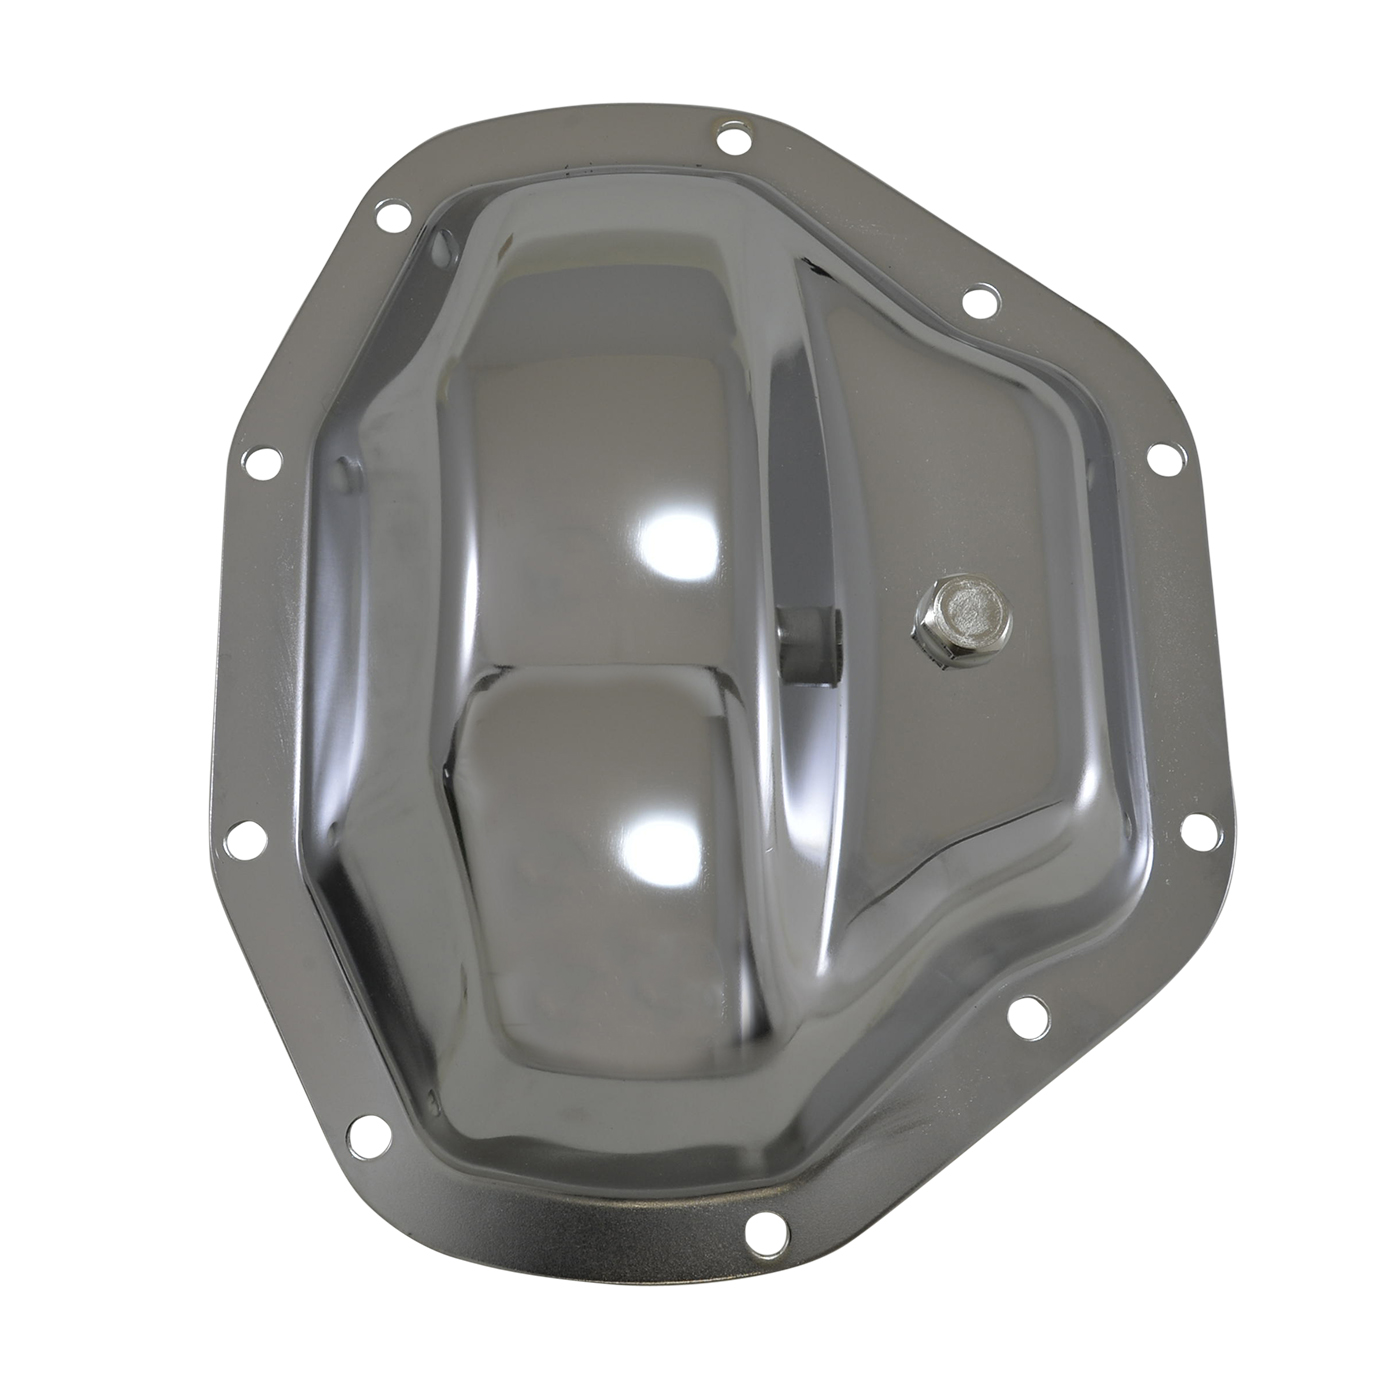 YP C1-D80 - Chrome replacement Cover for Dana 80